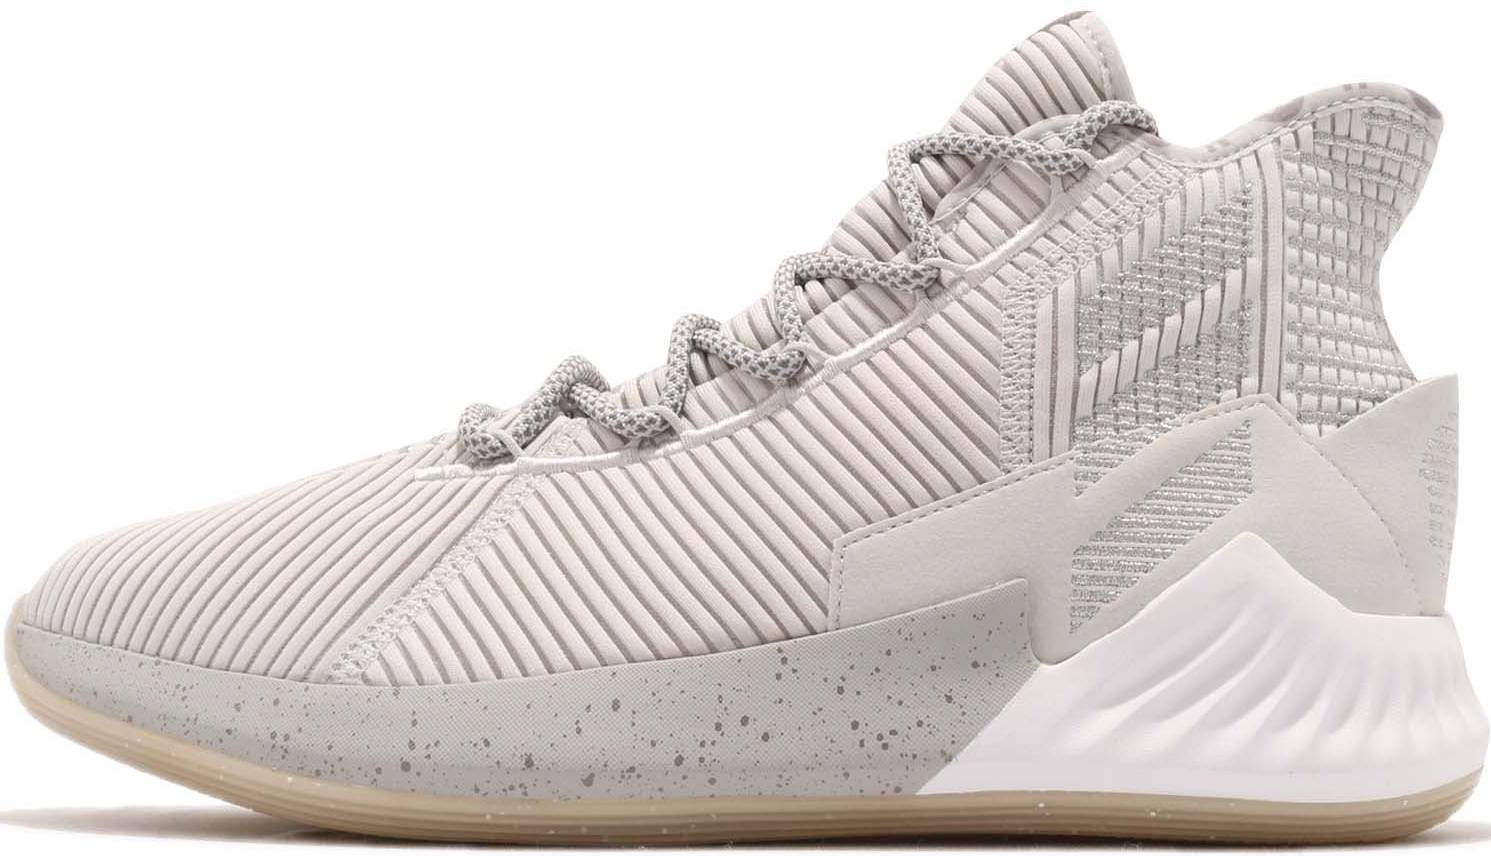 Only $85 + Review of Adidas D Rose 9